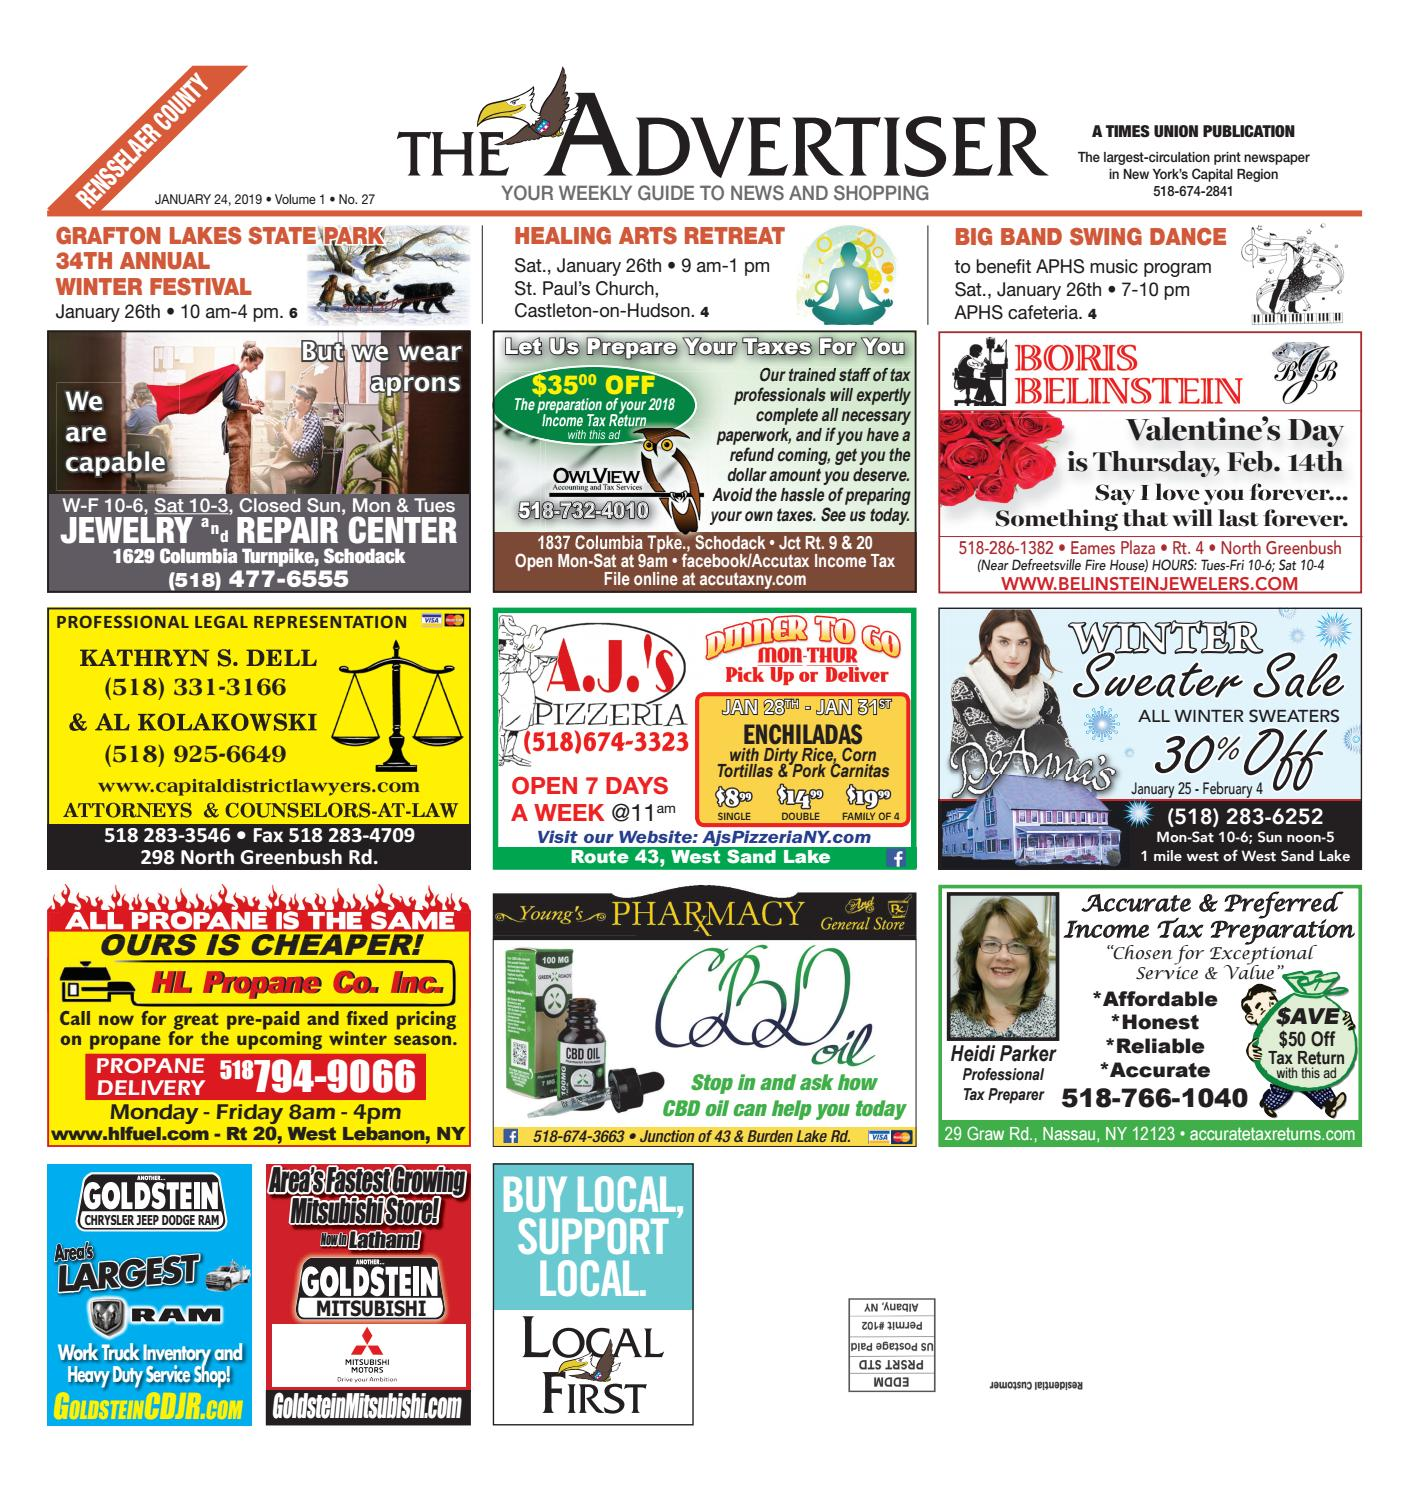 Local First The Advertiser 012419 by Capital Region Weekly Newspapers -  issuu